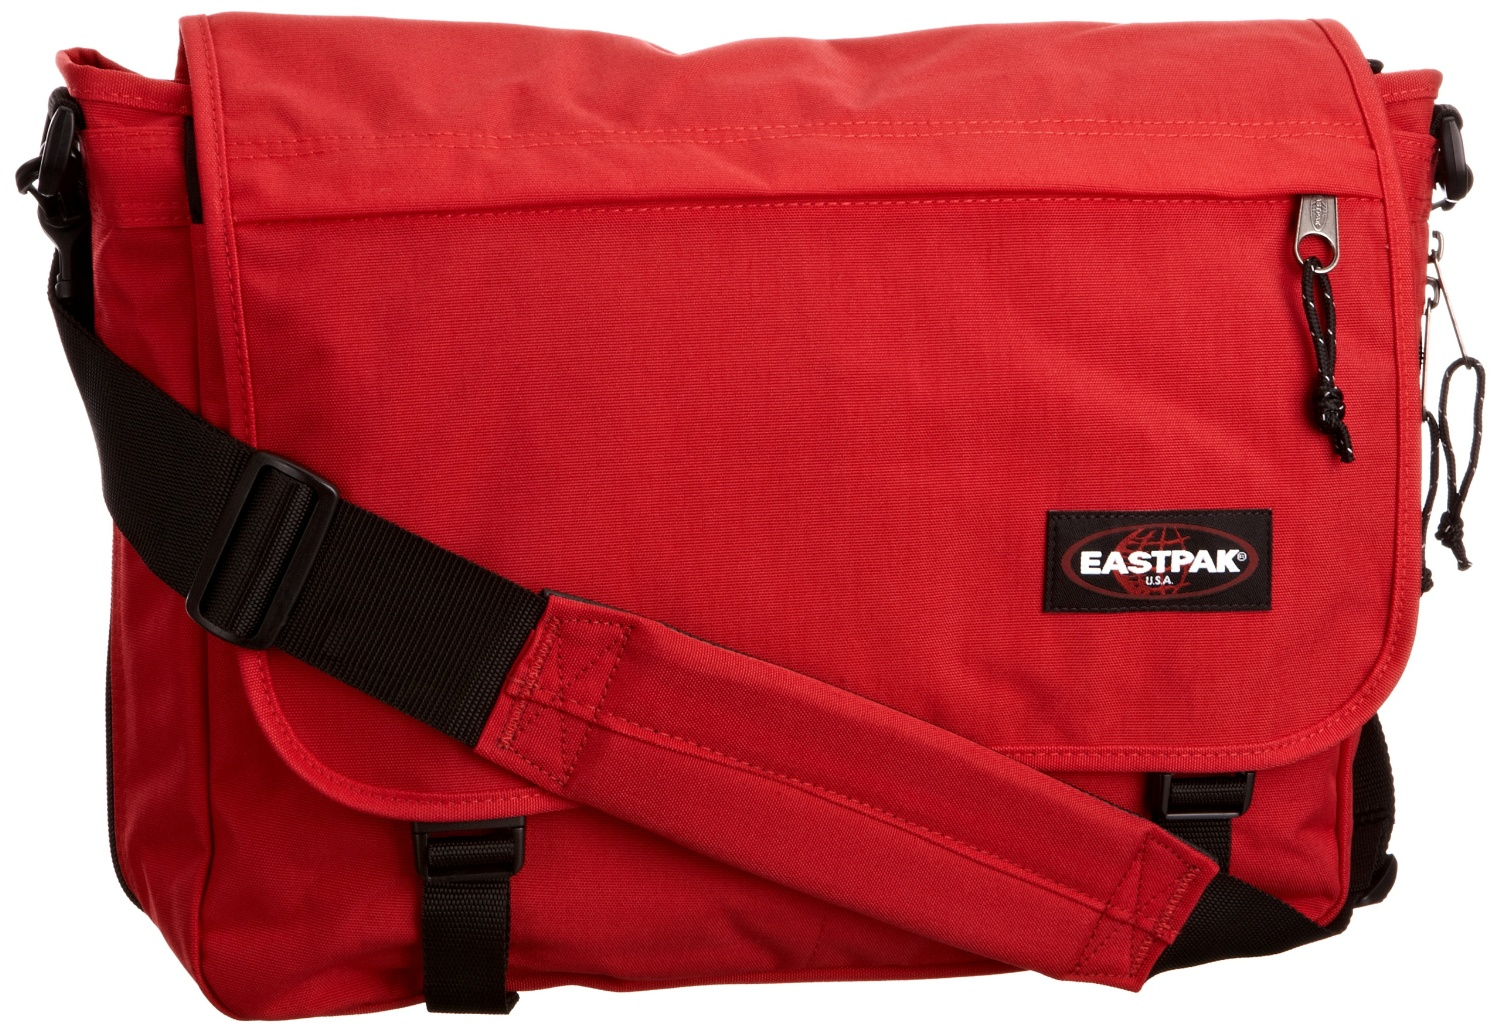 Eastpak Borsa Messenger